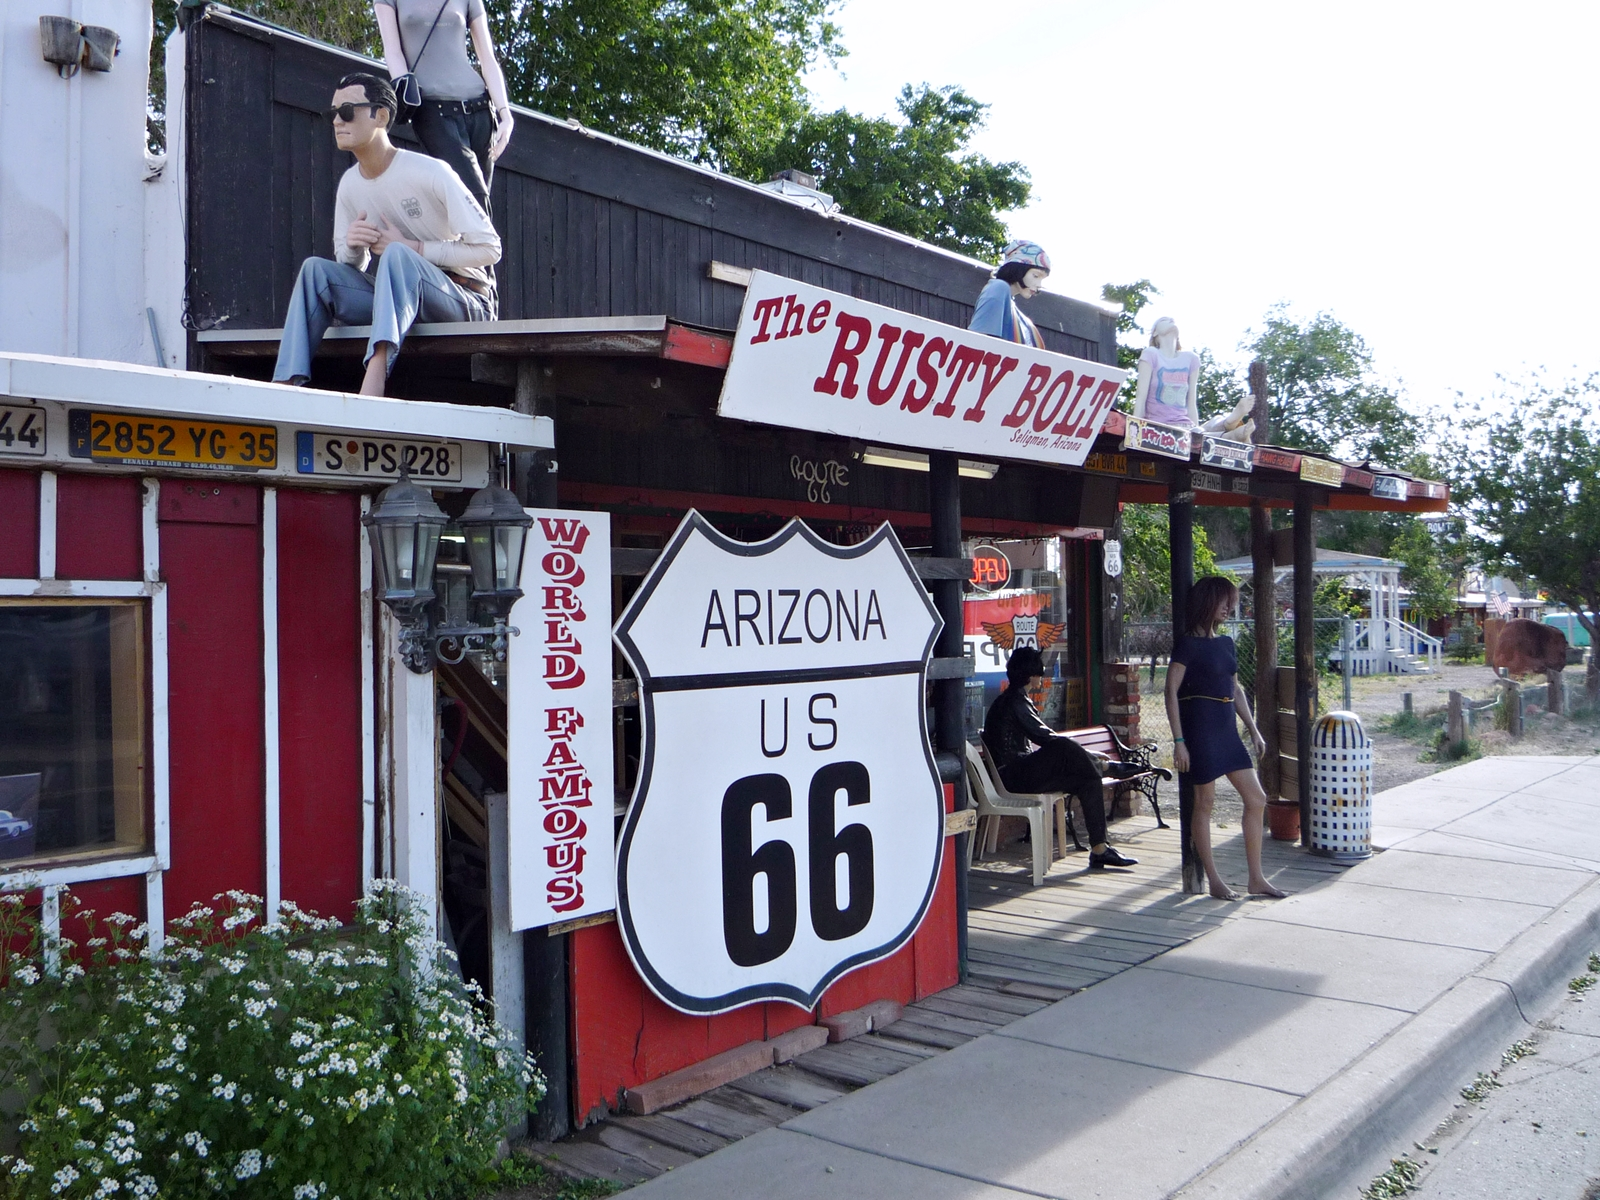 Seligman - Route 66 - USA Rundreise Westküste - Roadtrip - Fashionladyloves by Tamara Wagner - Travelblog